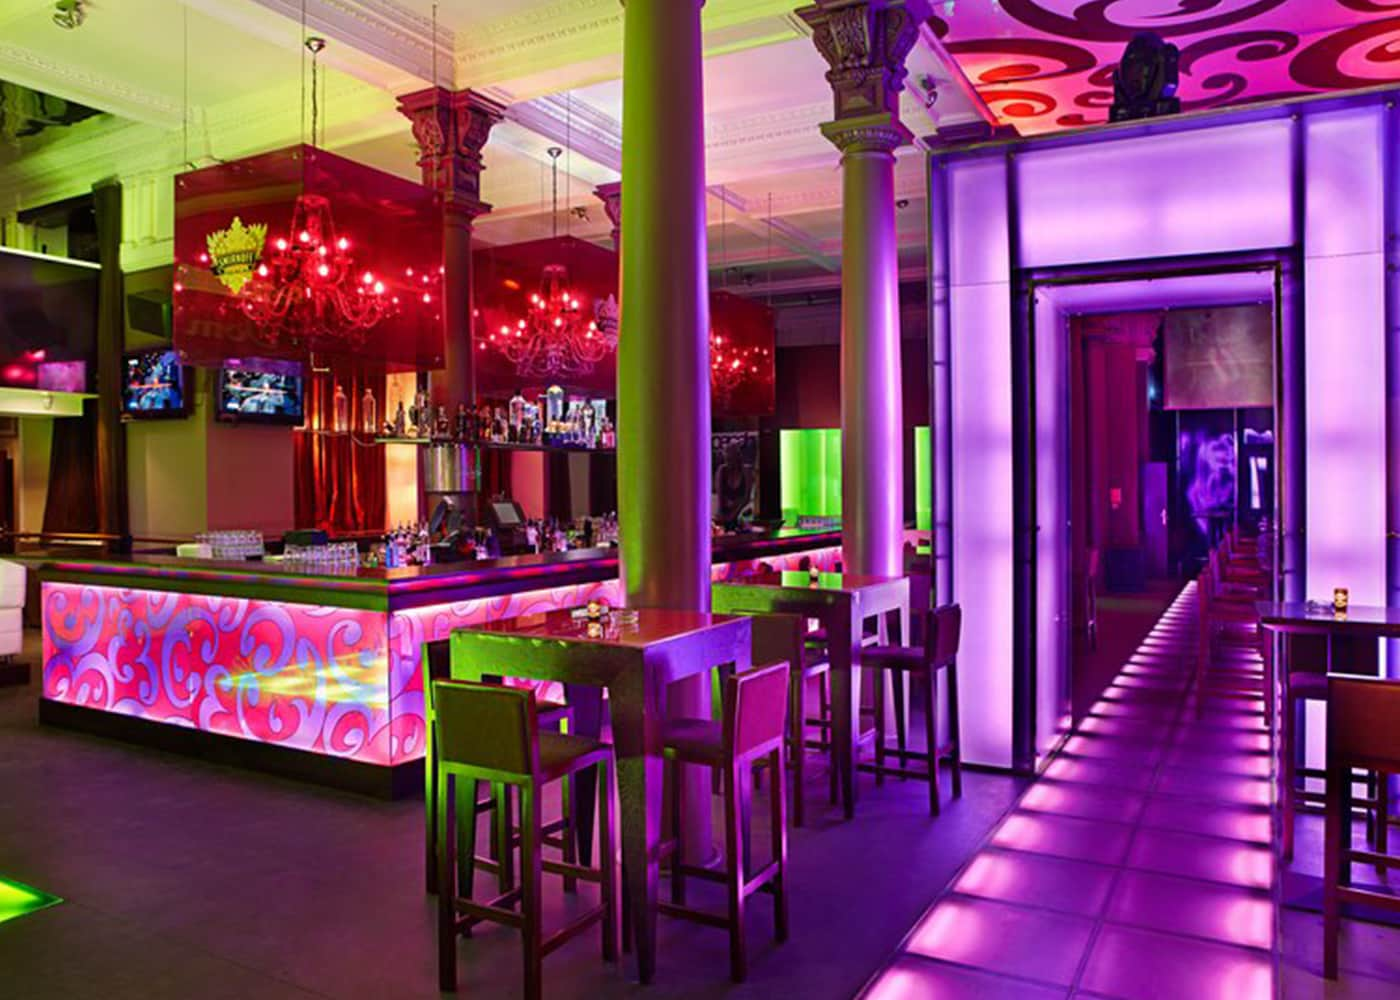 The purple and green interior of Platinum Club, Warsaw